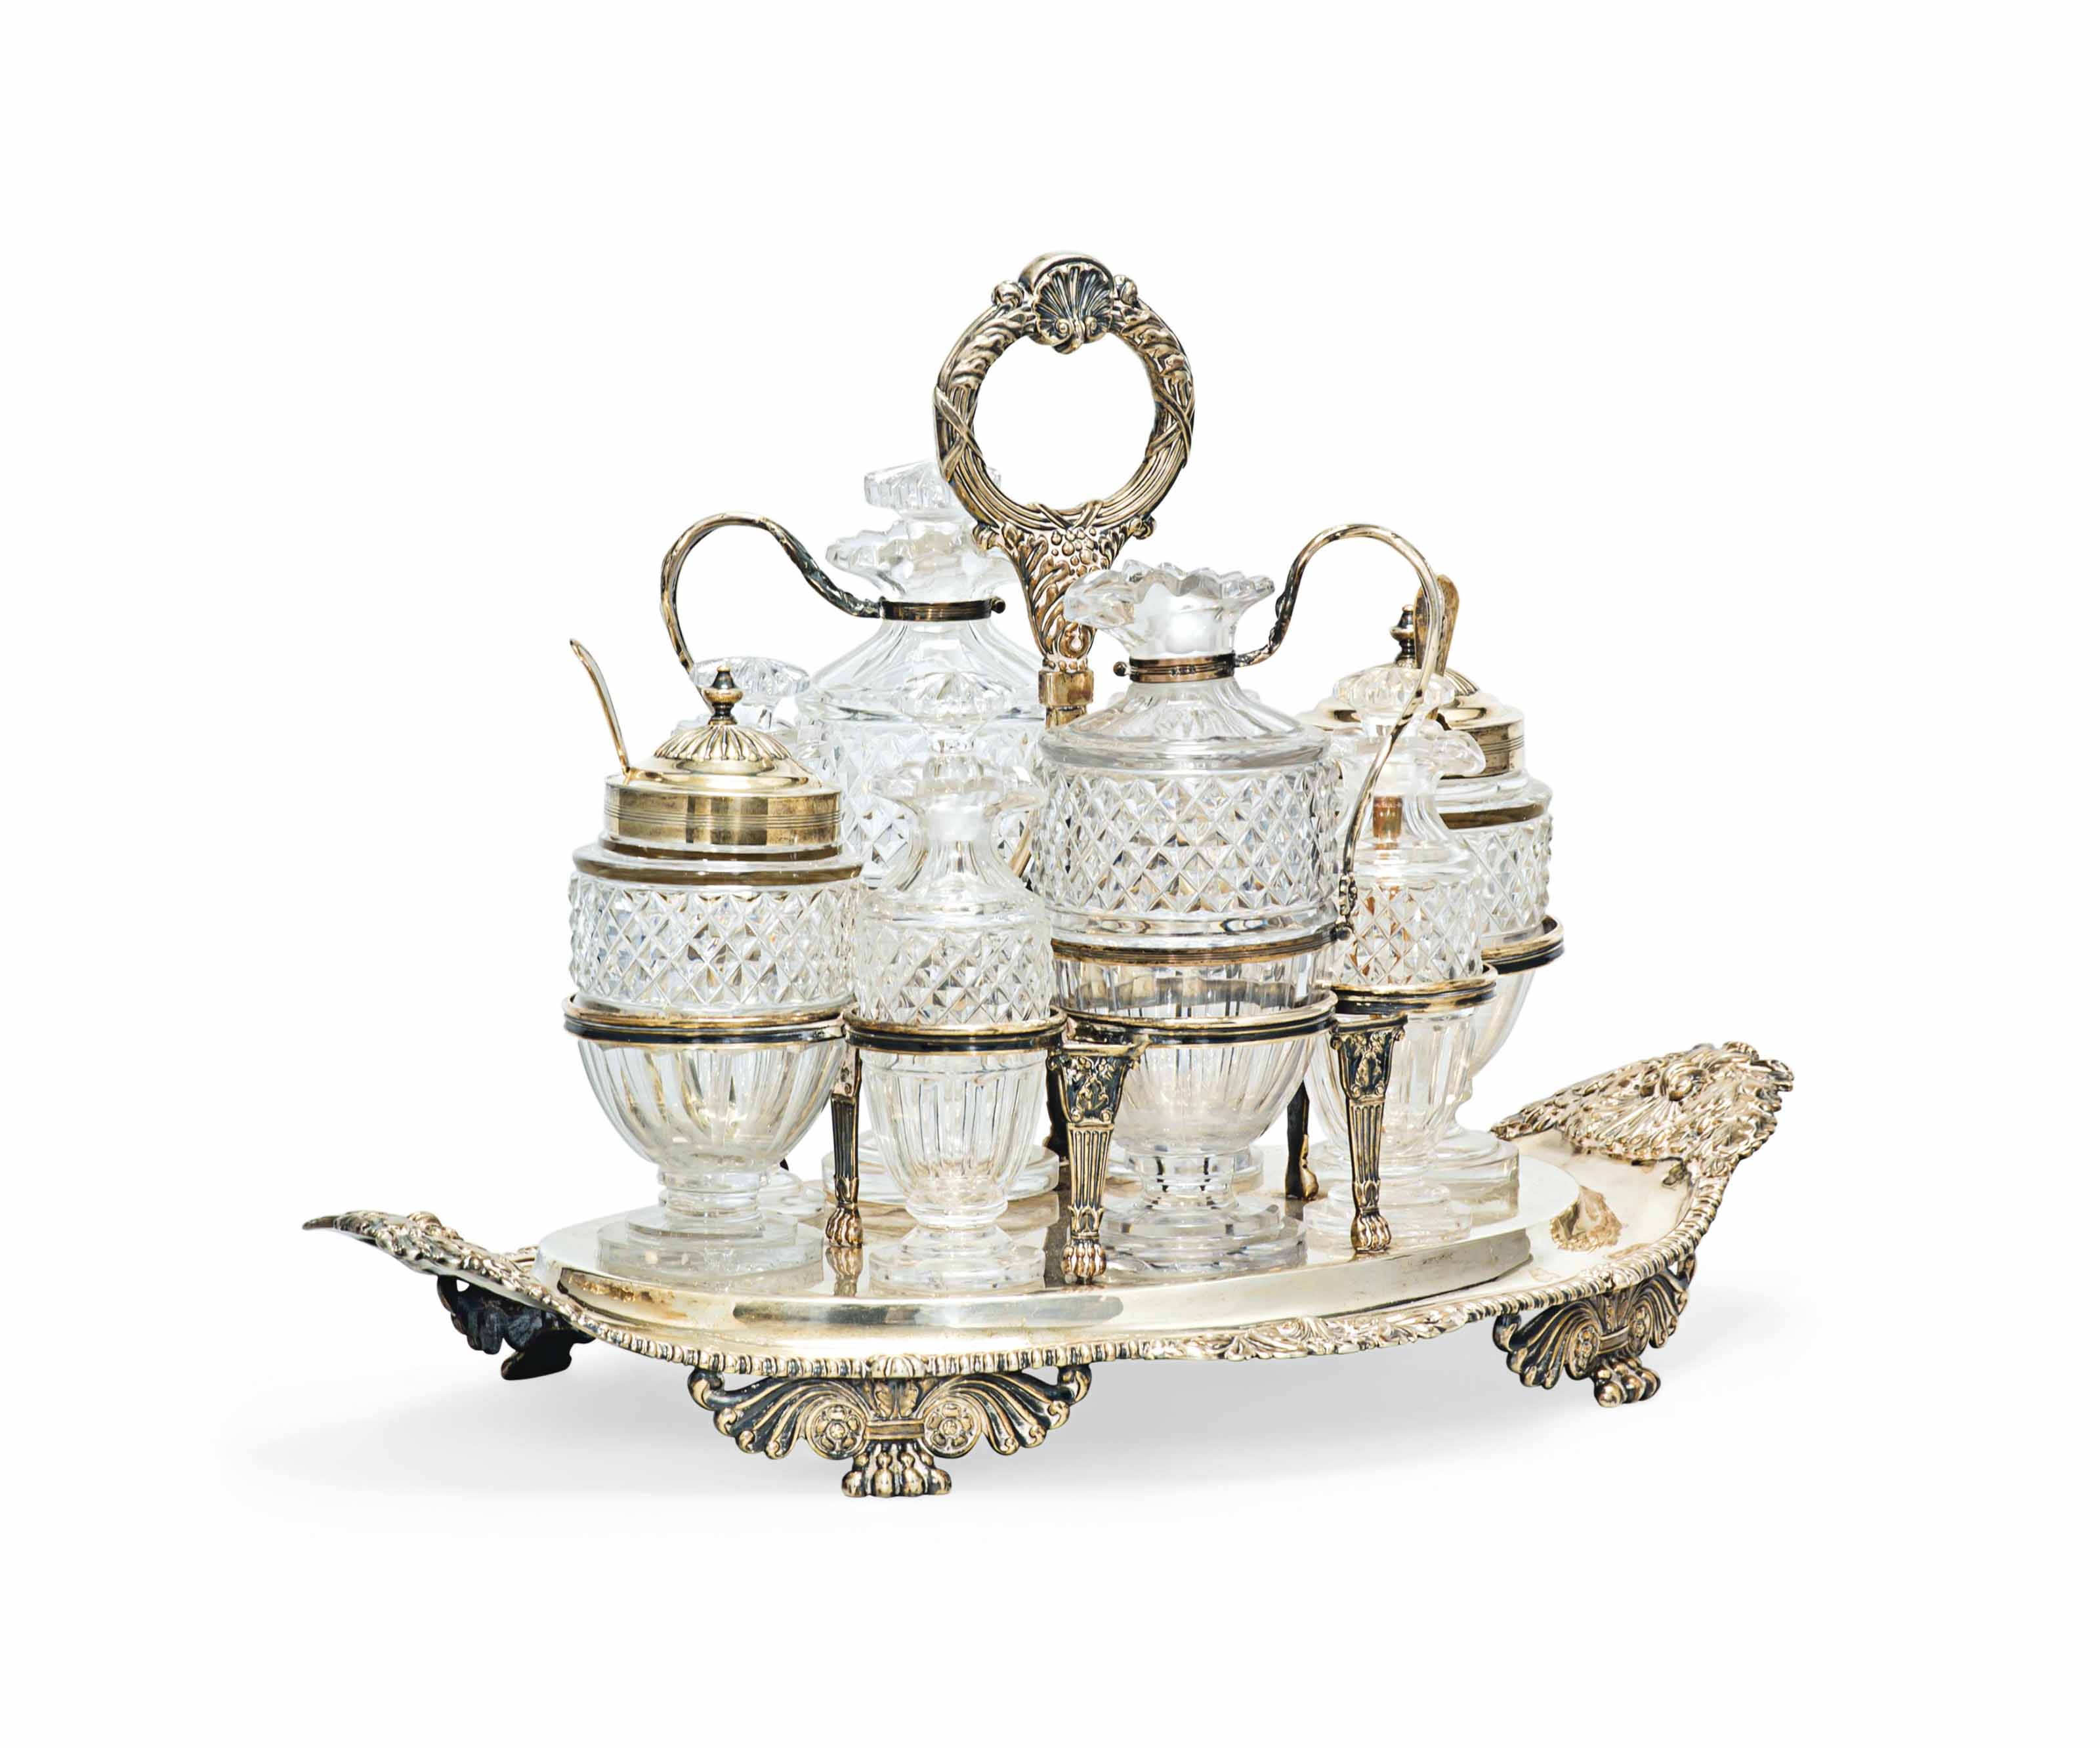 A GEORGE III SILVER EIGHT BOTTLE CRUET